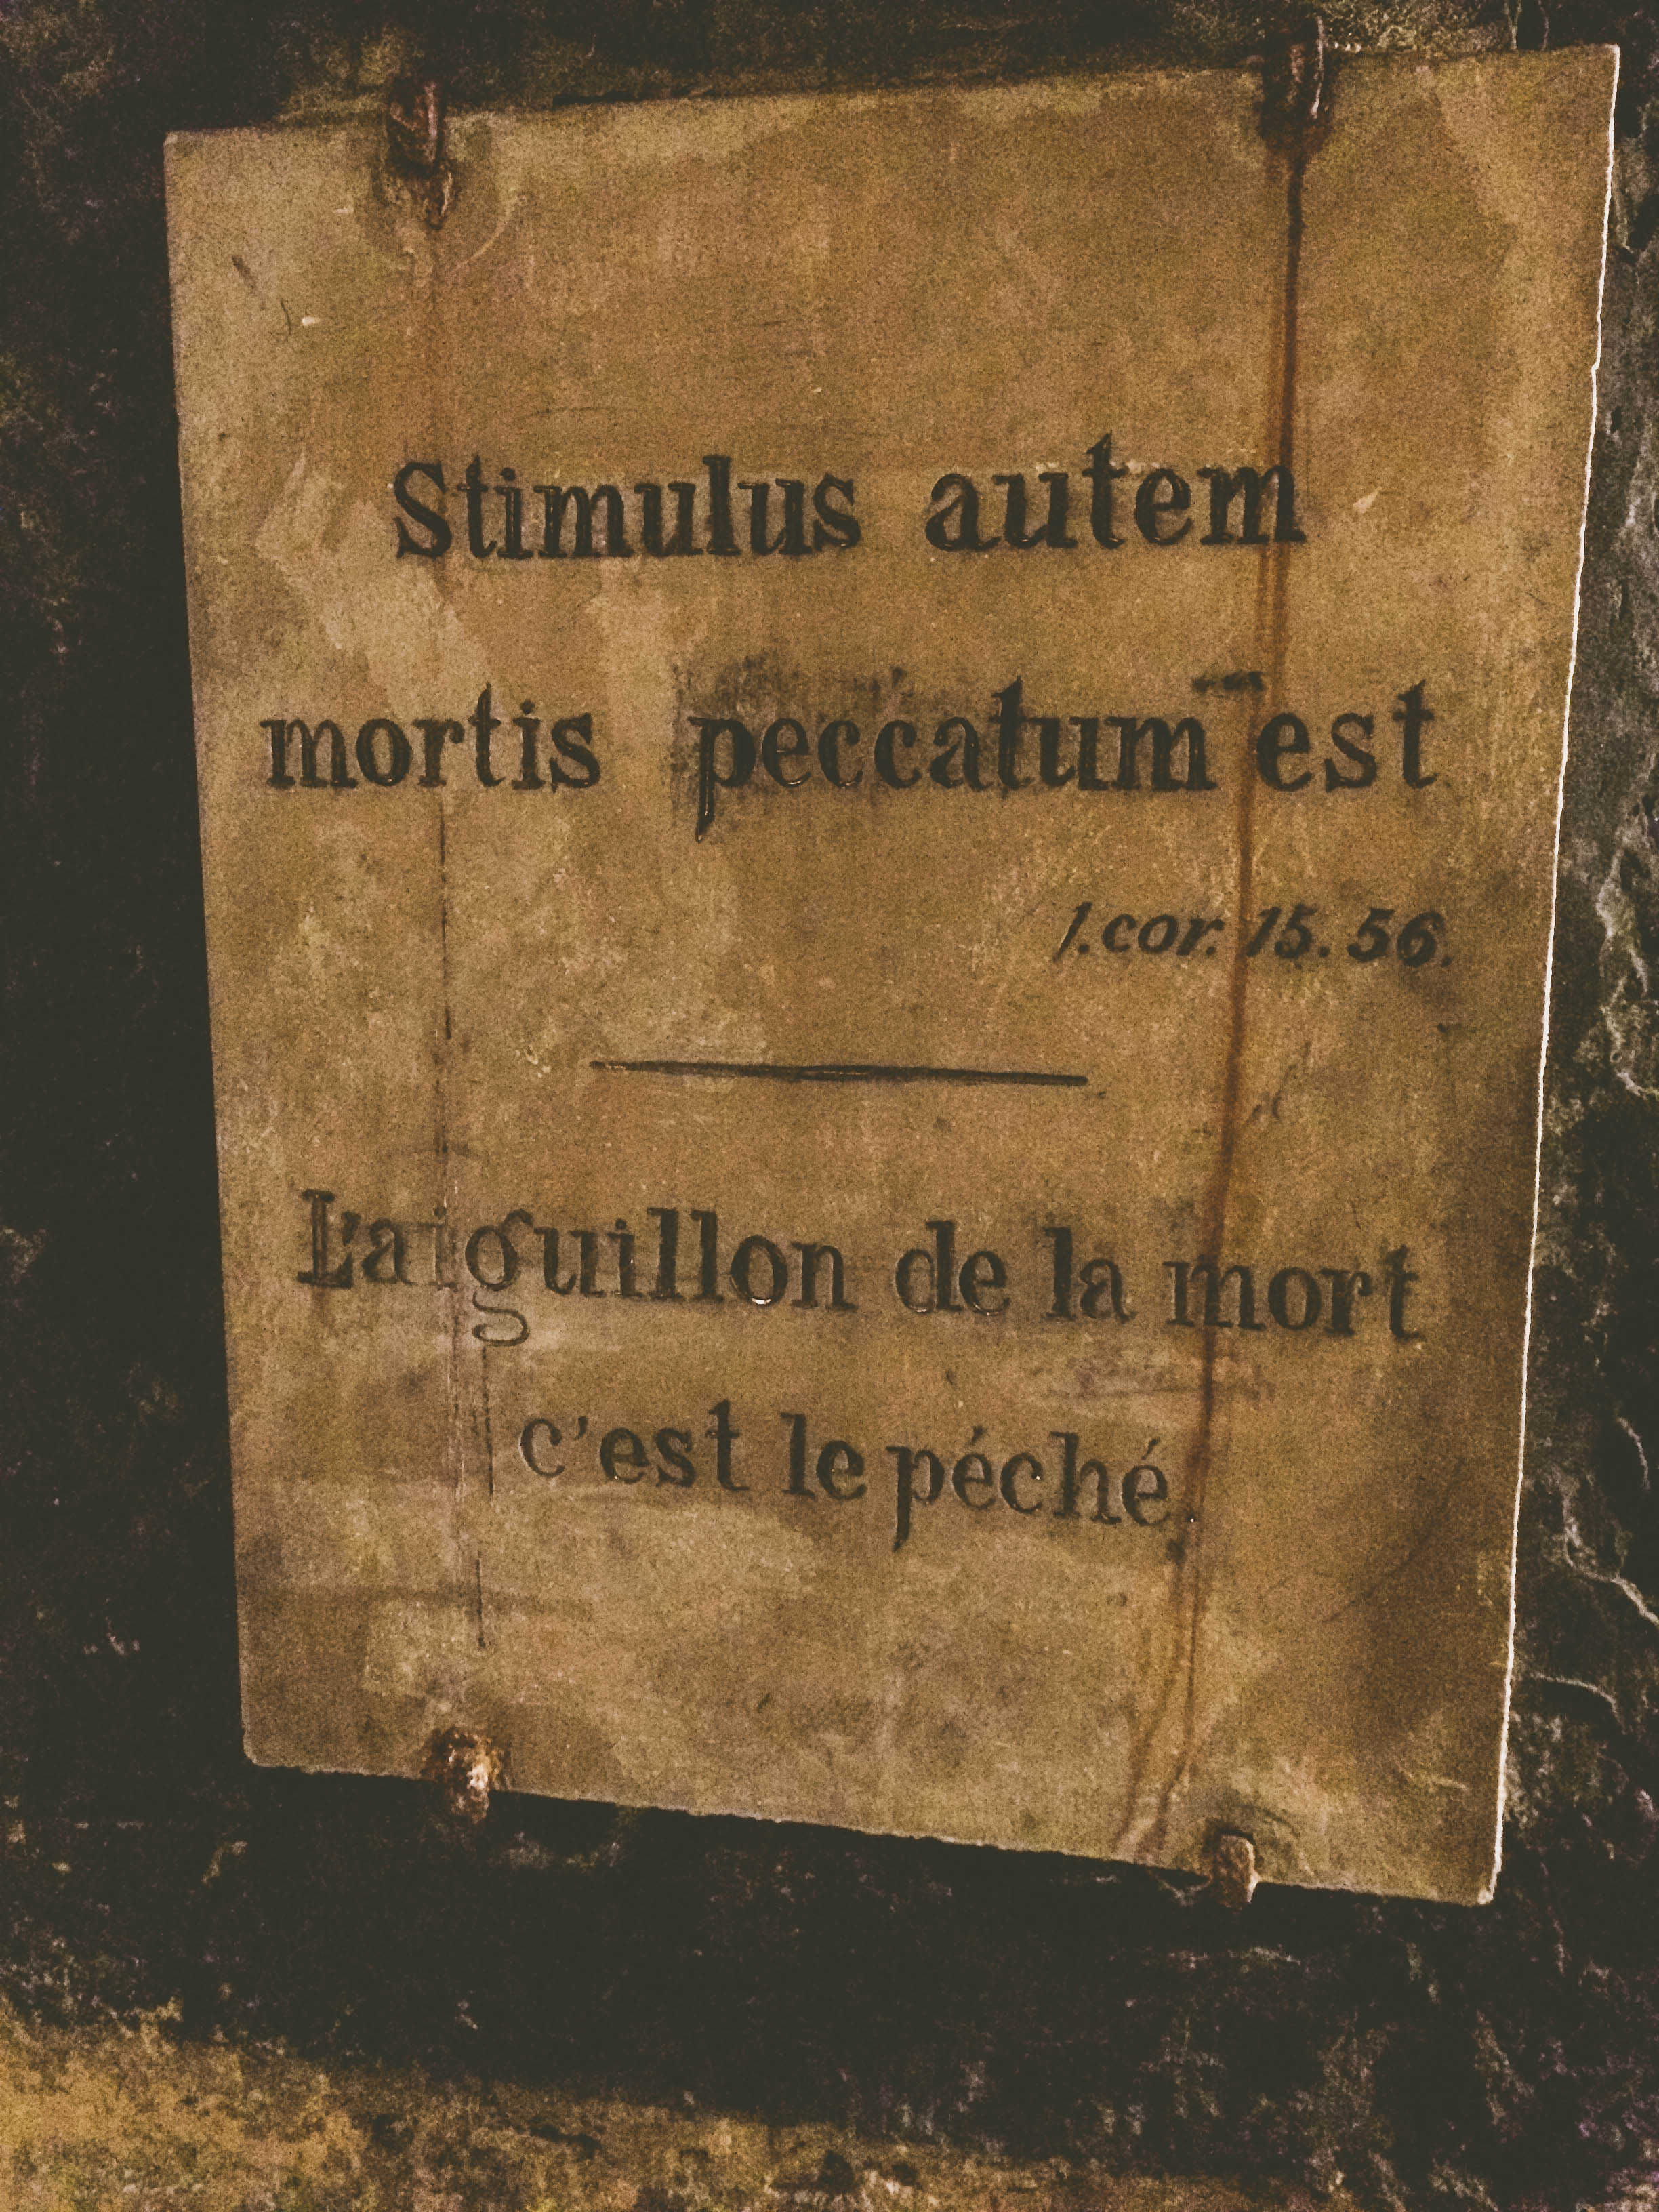 Another reading in the catacombs; this one is in both Latin and French.